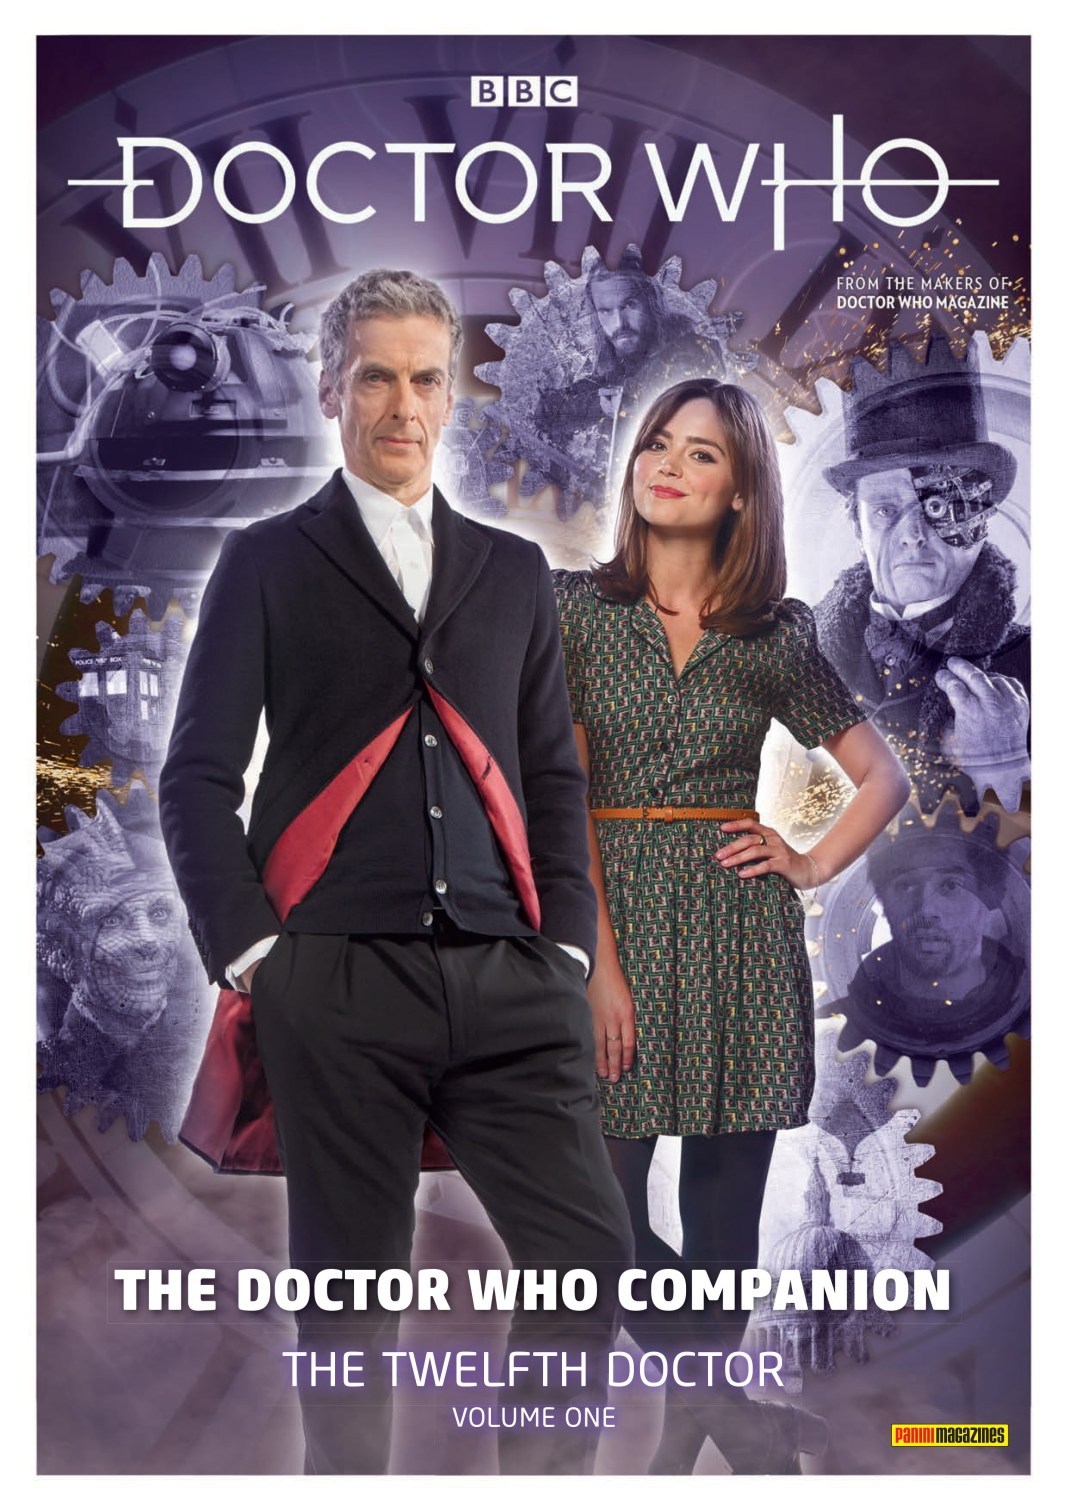 Cover to Doctor Who Magazine's Doctor Who Companion: The Twelfth Doctor Volume One (c) Panini